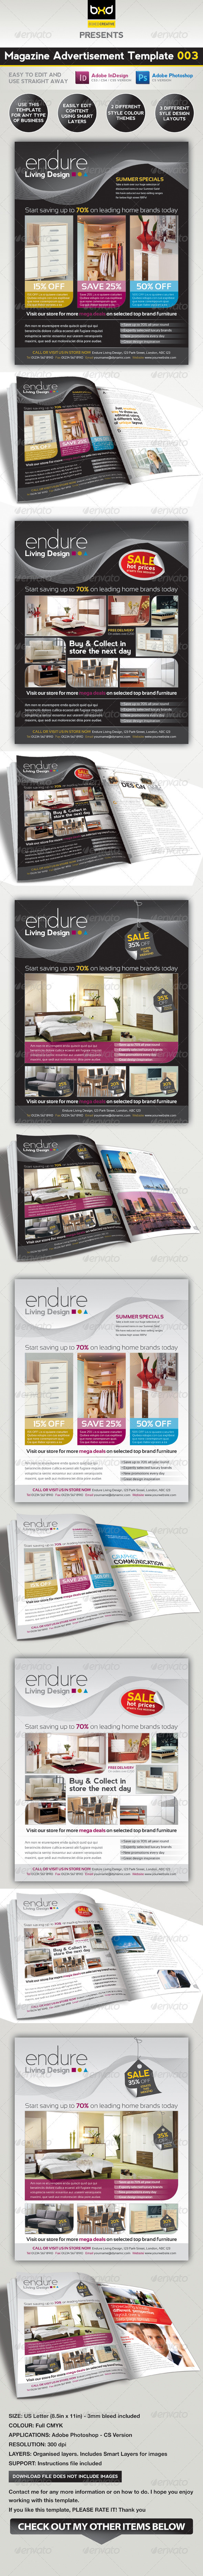 Magazine Advert Template 003 - Corporate Flyers